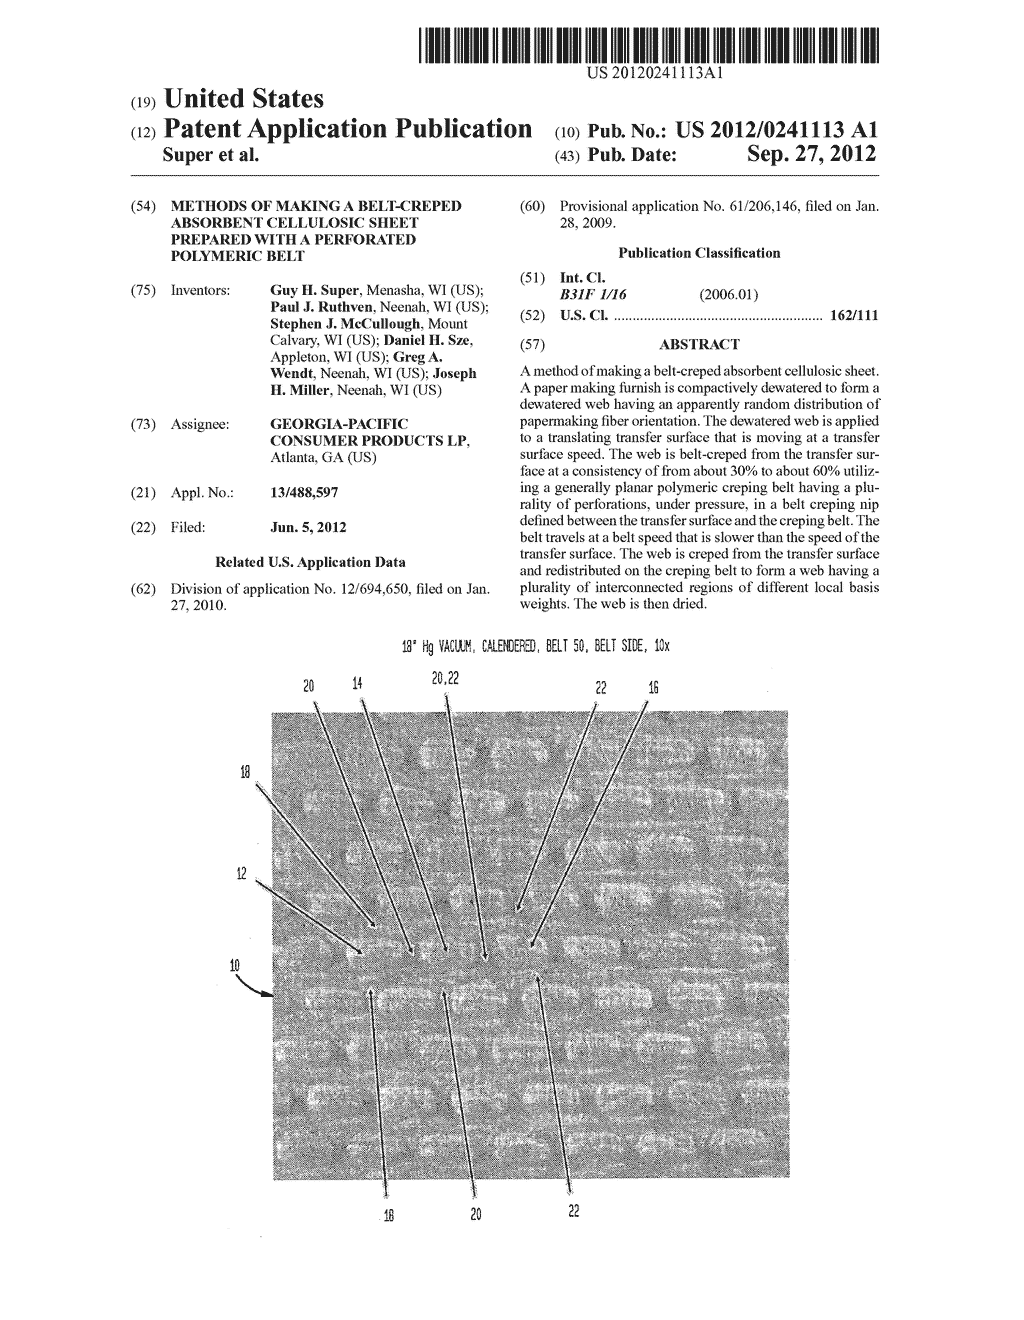 Methods of Making a Belt-Creped Absorbent Cellulosic Sheet Prepared with a     Perforated Polymeric Belt - diagram, schematic, and image 01